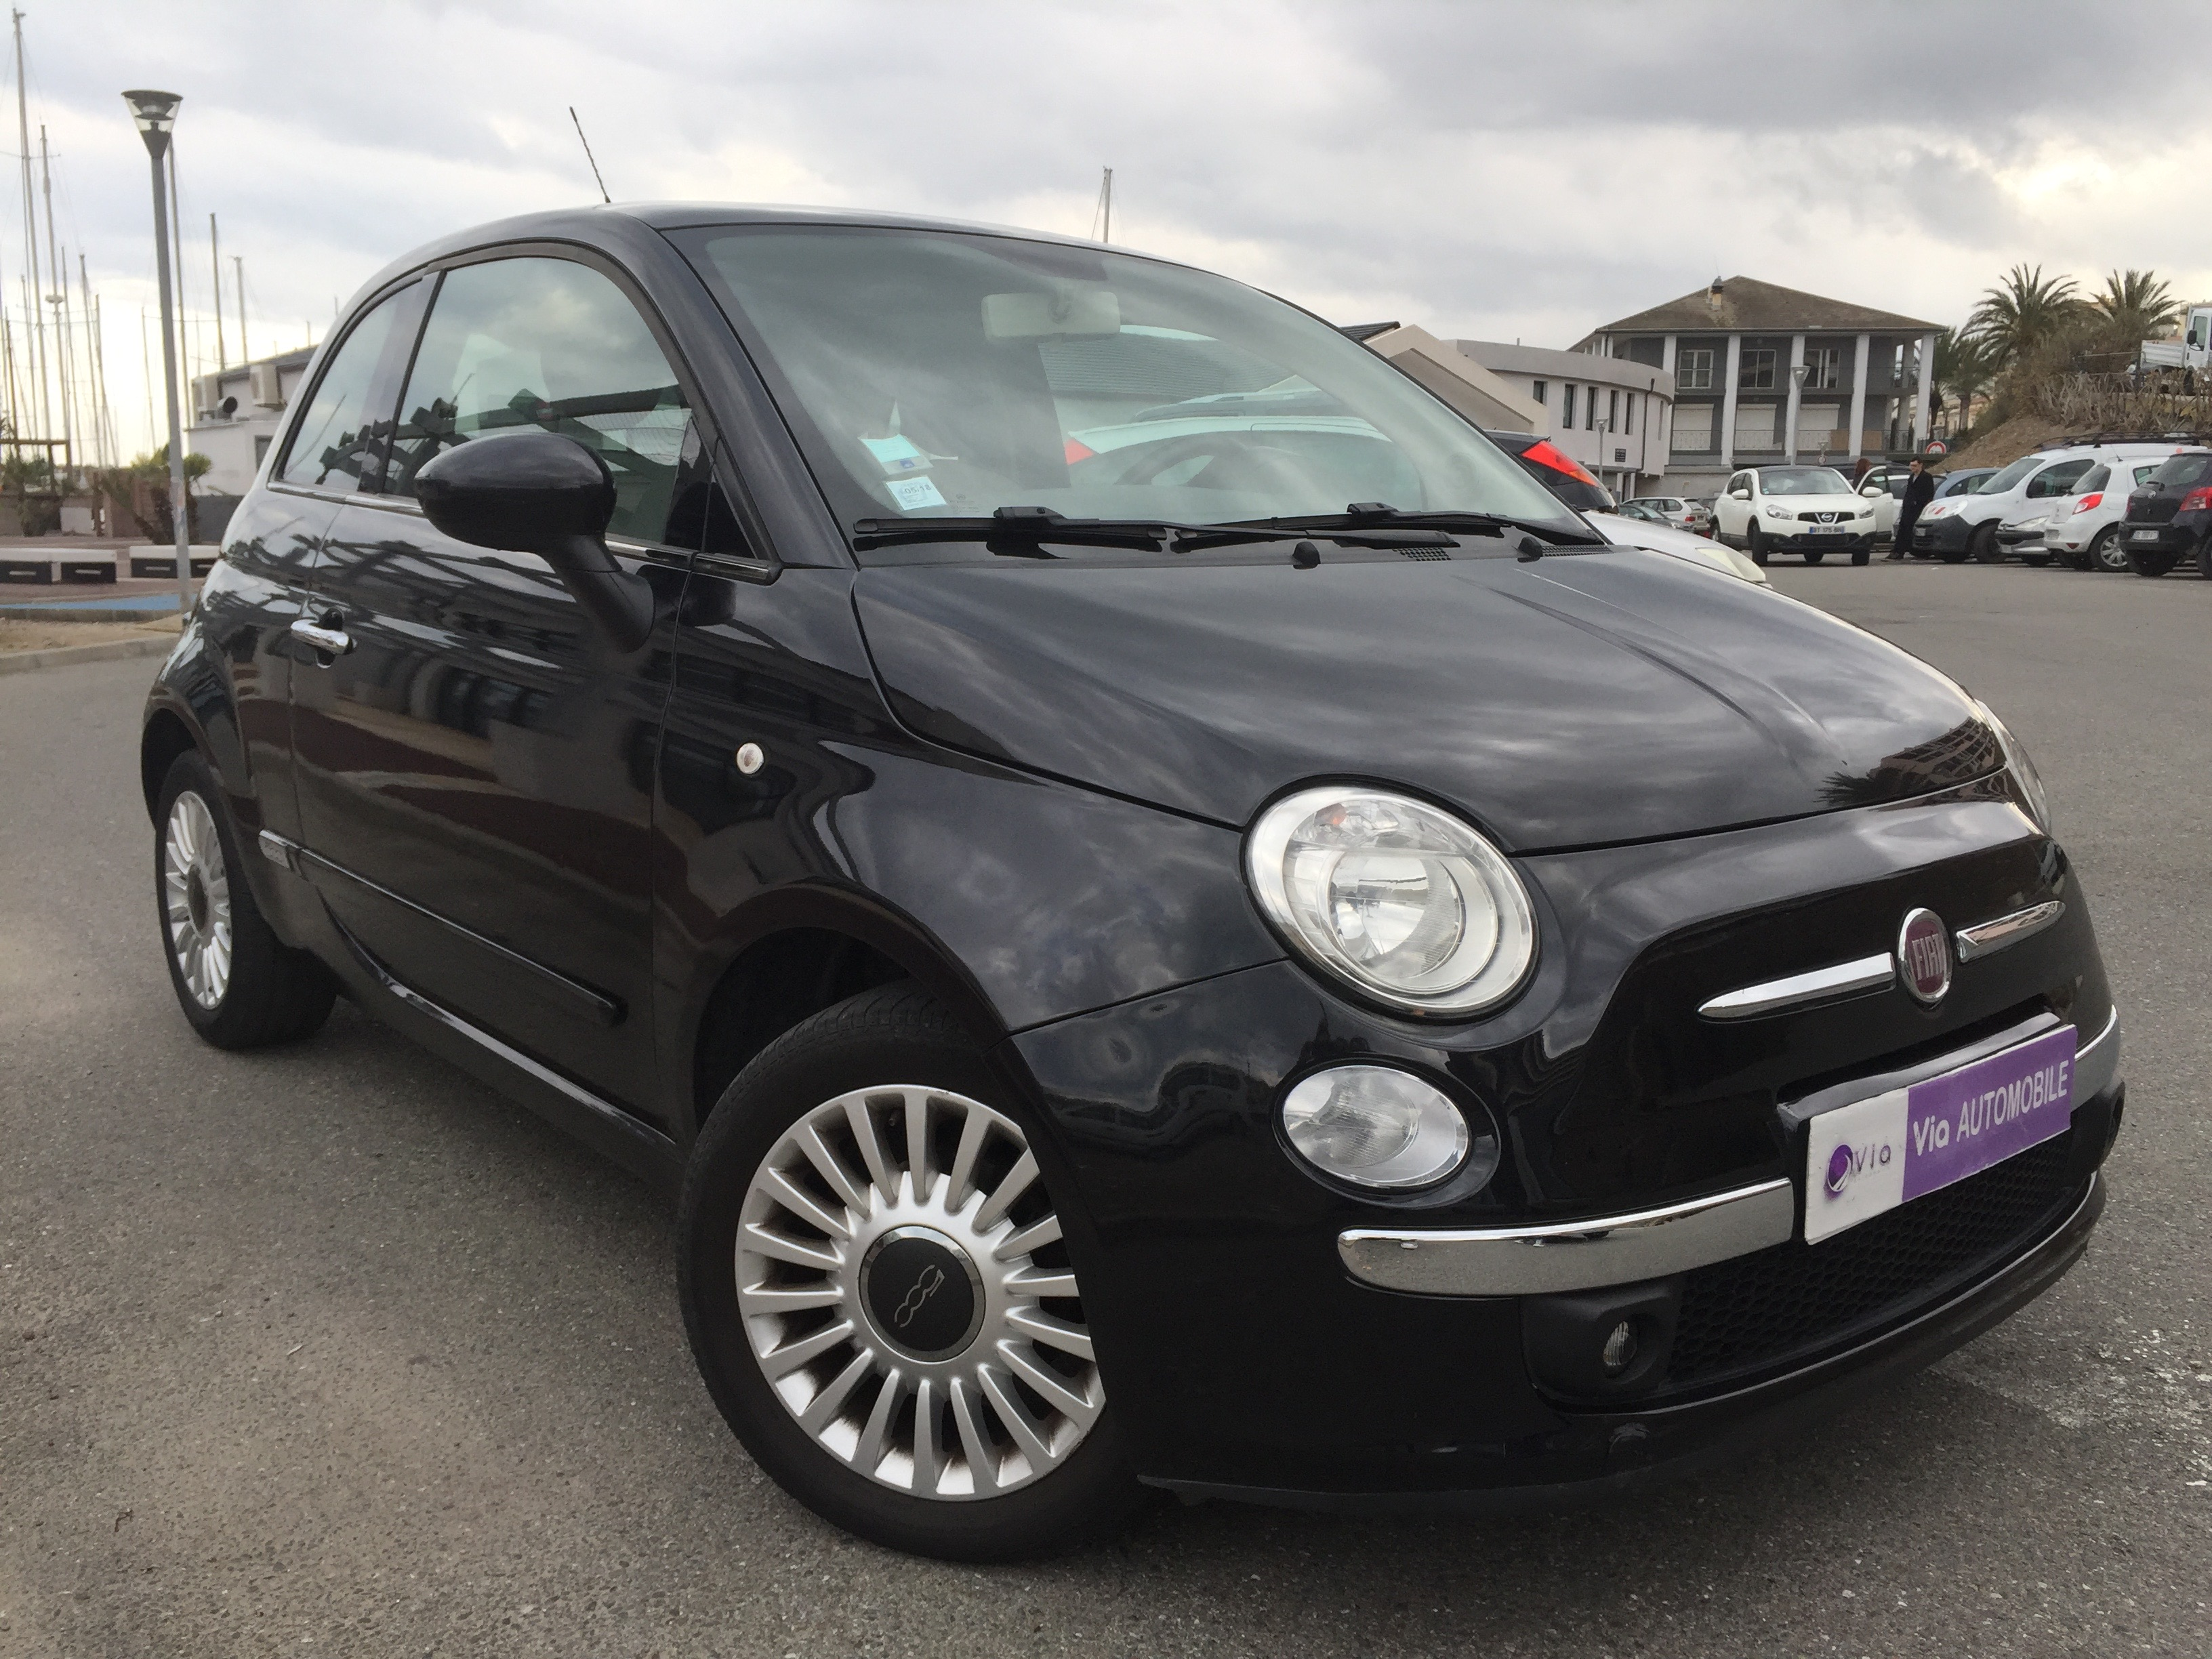 voiture fiat 500 1 2 8v 69 ch lounge occasion essence 2012 39000 km 7700 ville di. Black Bedroom Furniture Sets. Home Design Ideas